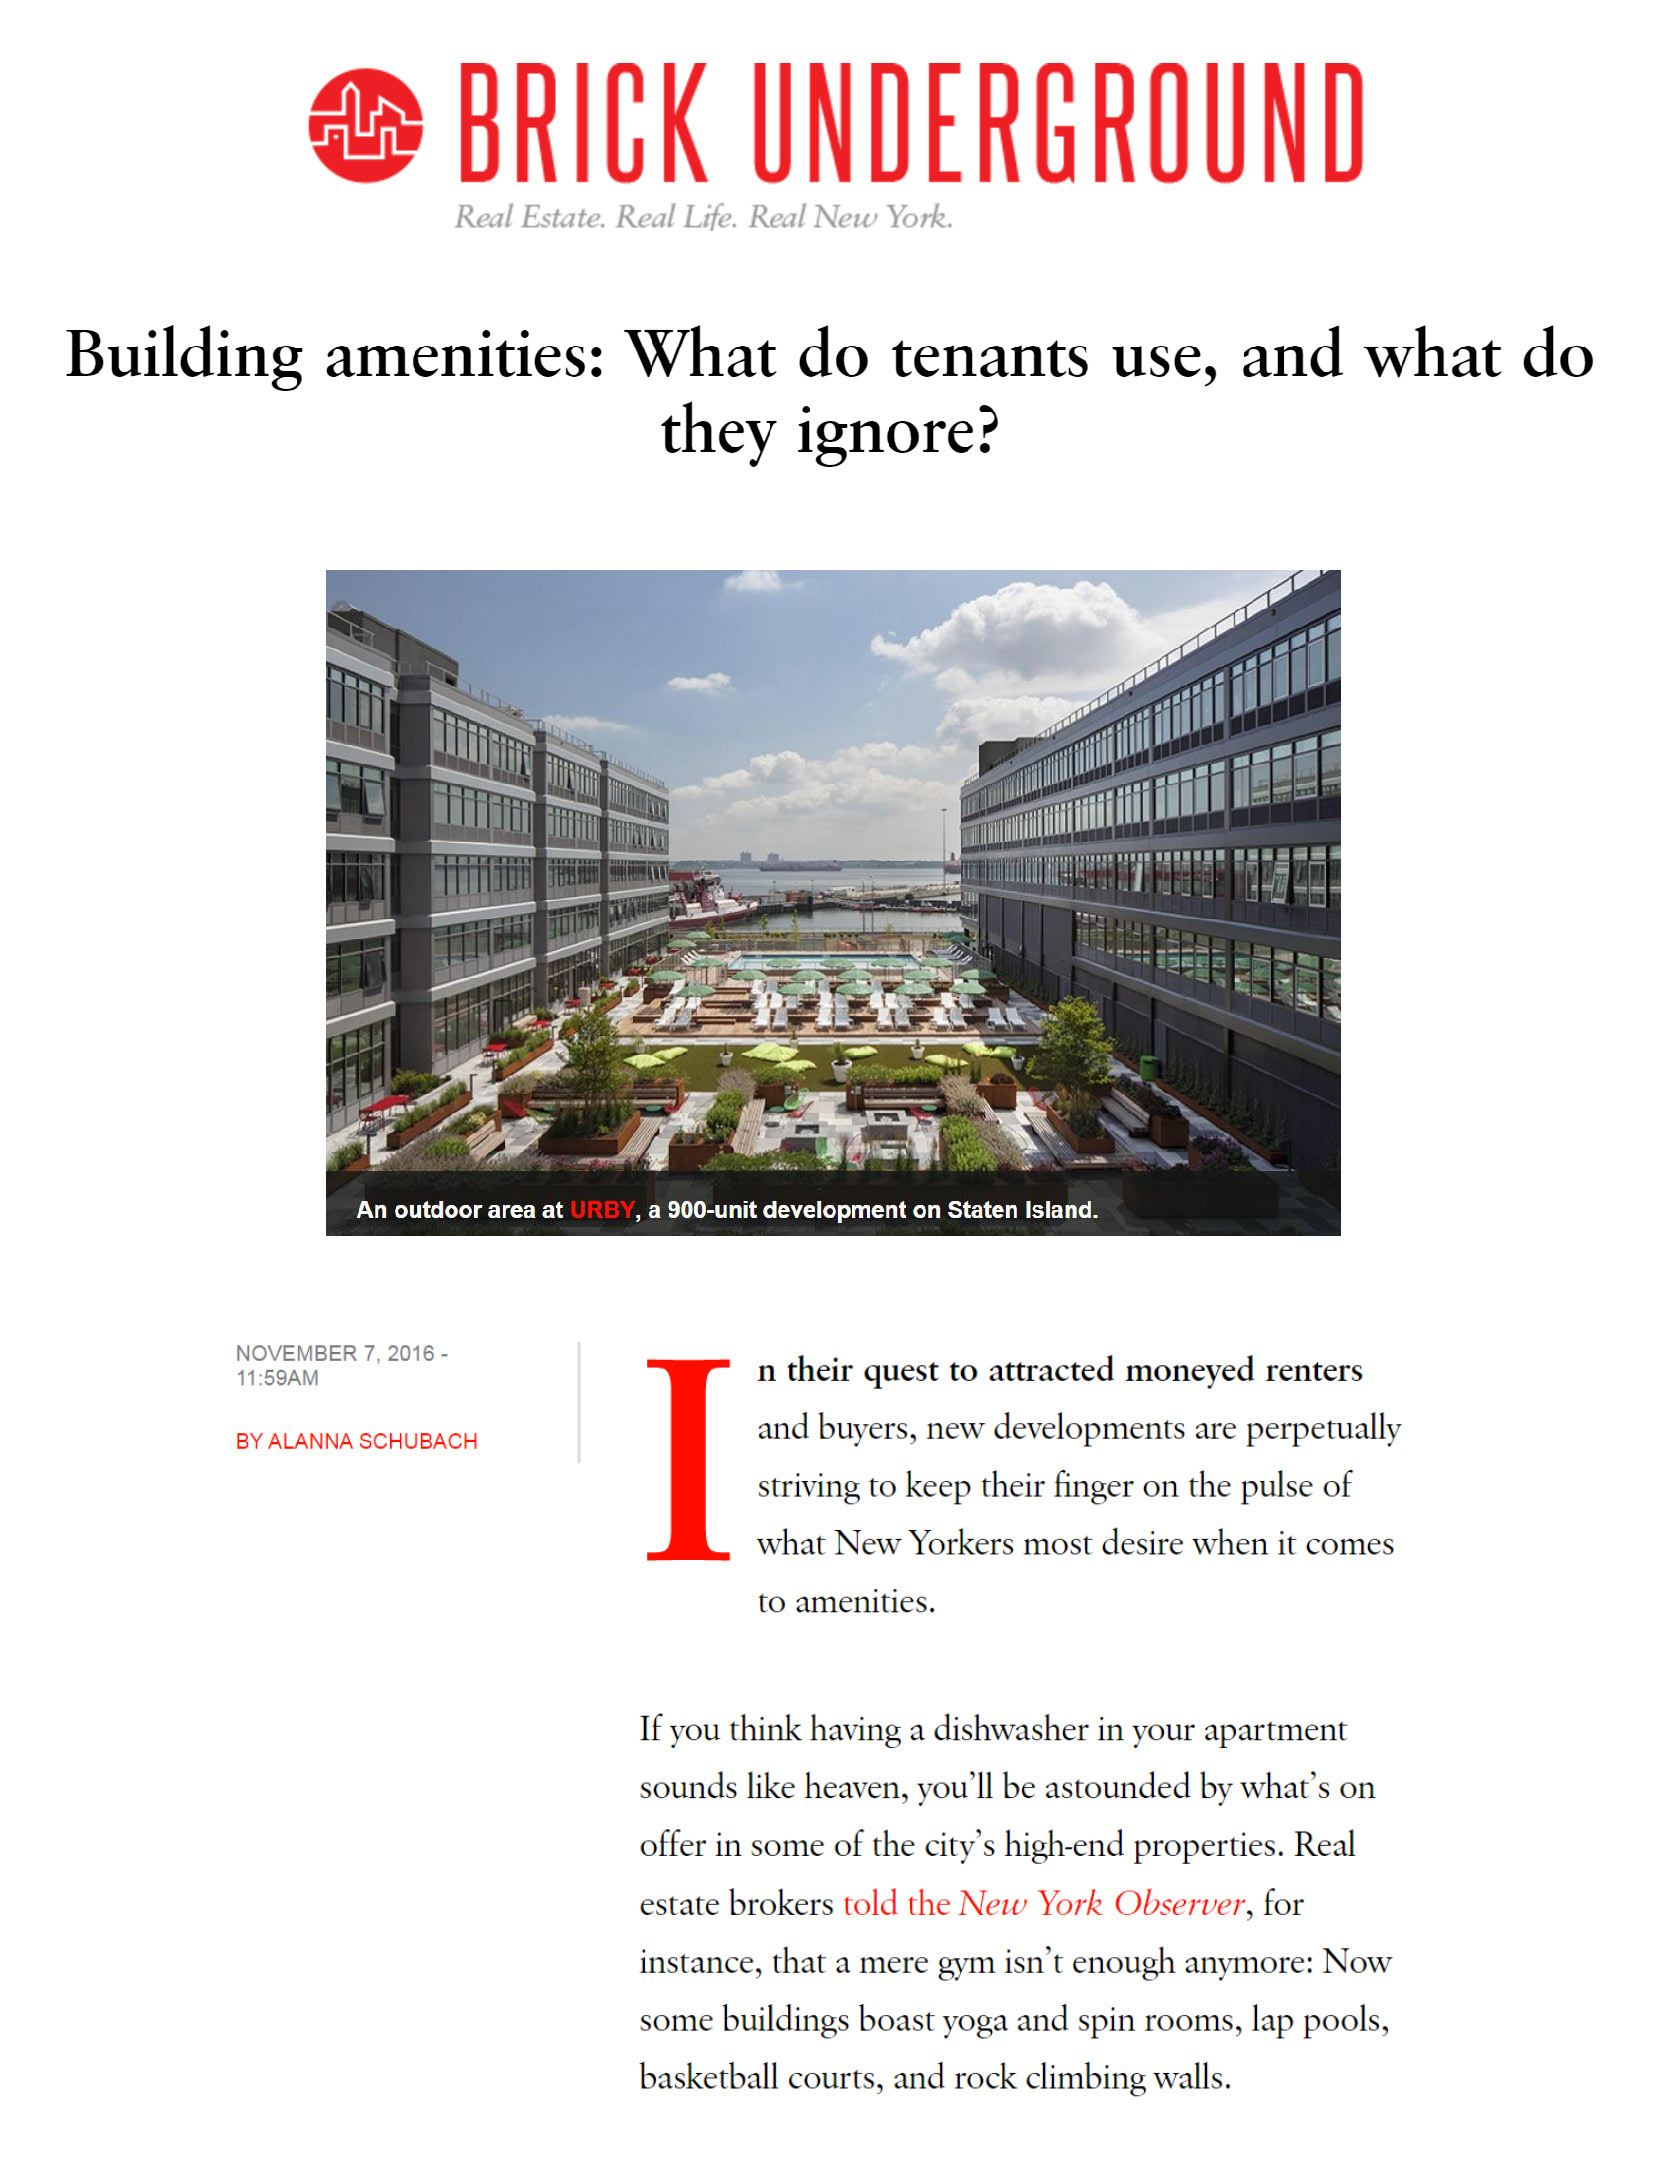 brick-underground-building-amenities-what-do-tenants-use-and-what-do-_page_1